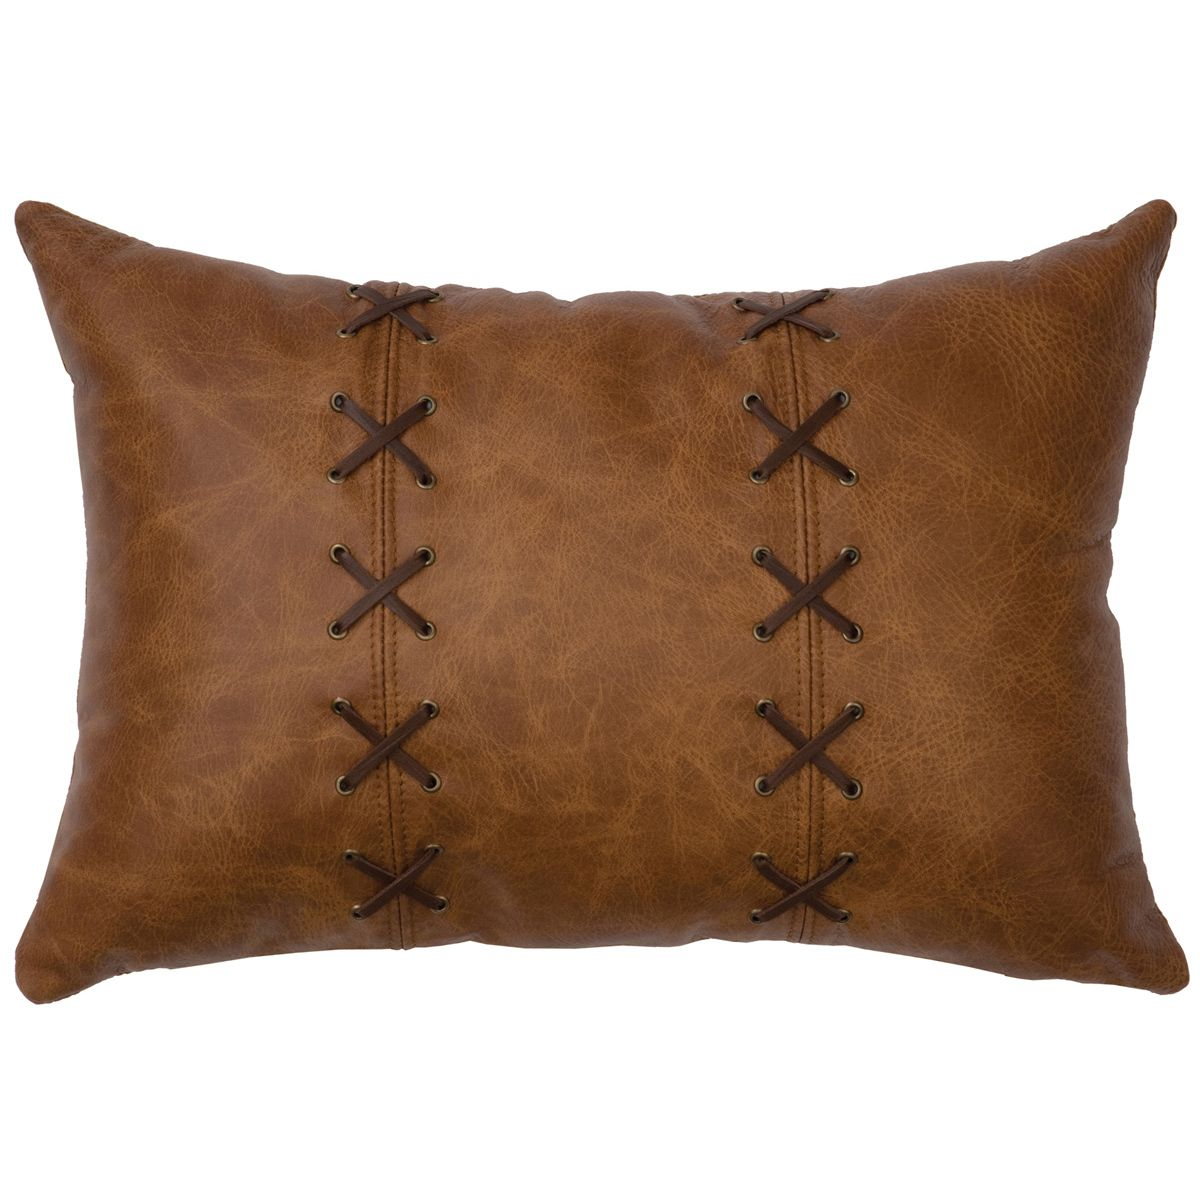 Whiskey Leather & Deerskin Lacing Pillow - Fabric Back